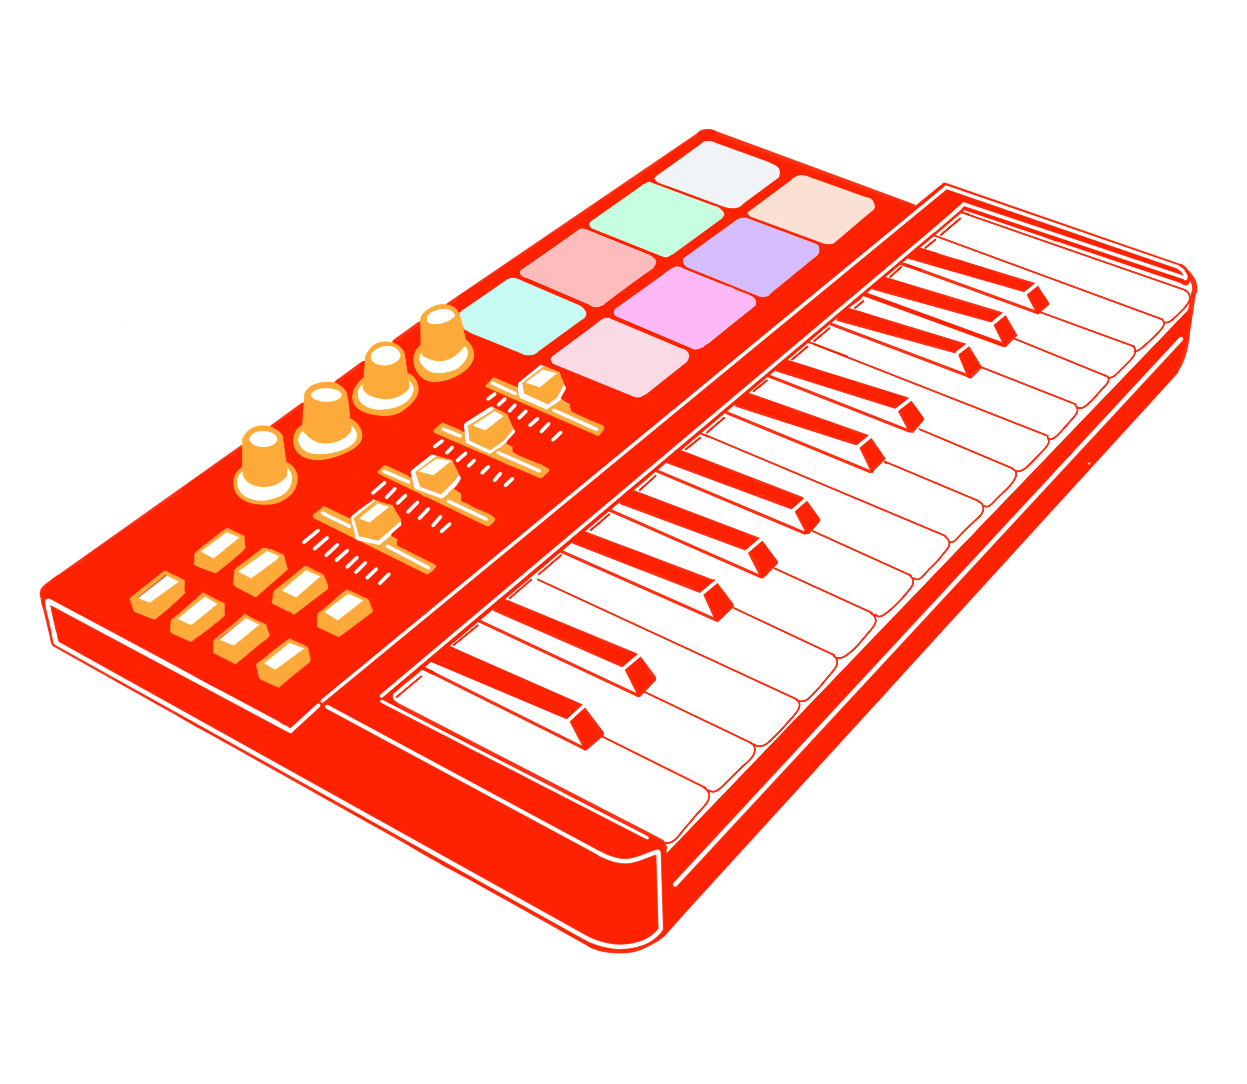 Illustration of a red synthesizer with white keys.